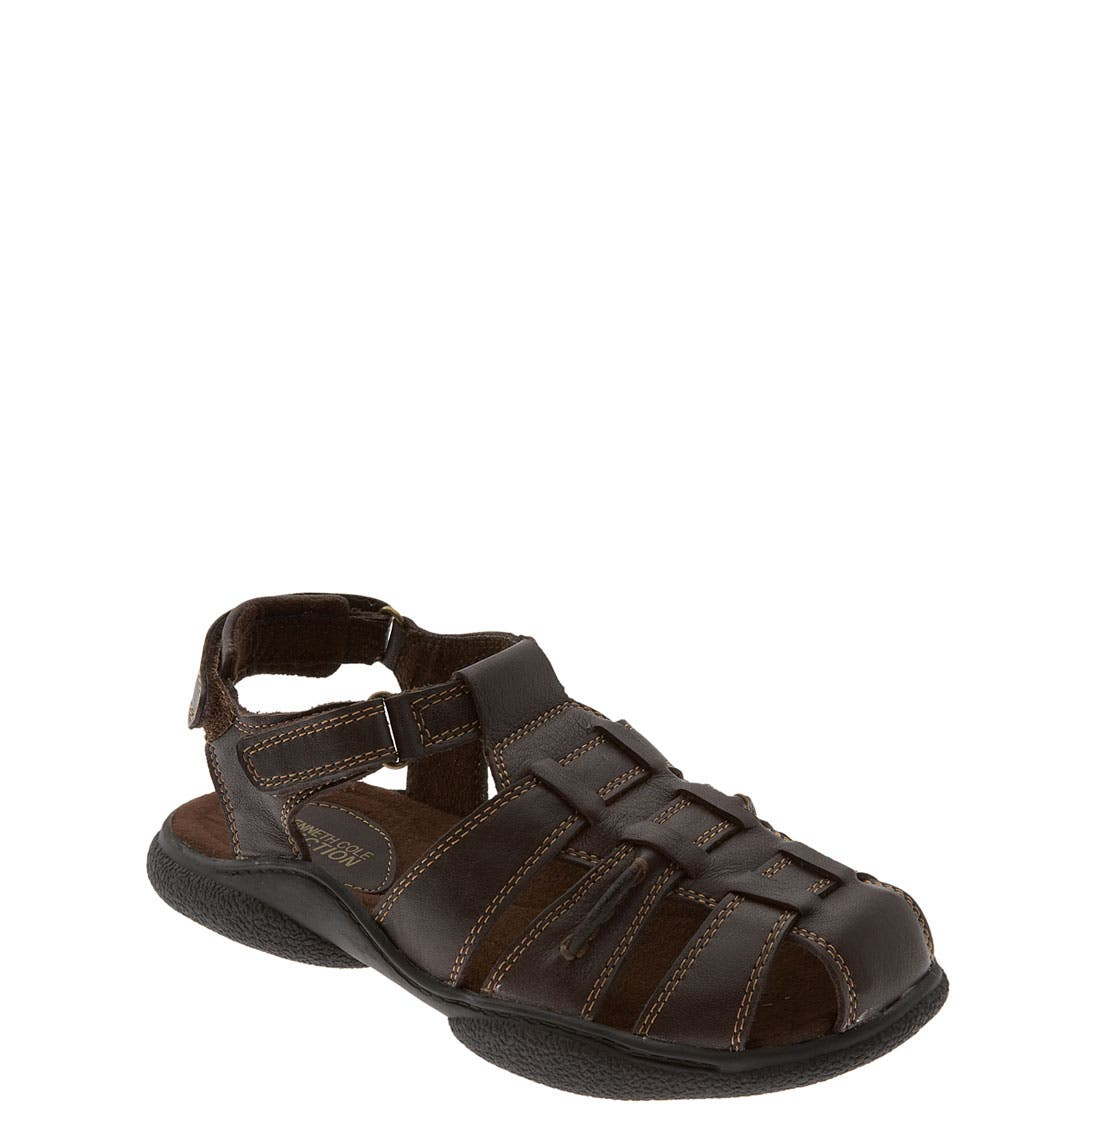 Main Image - Kenneth Cole Reaction 'Make a Wes' Sandal (Little Kid & Big Kid)